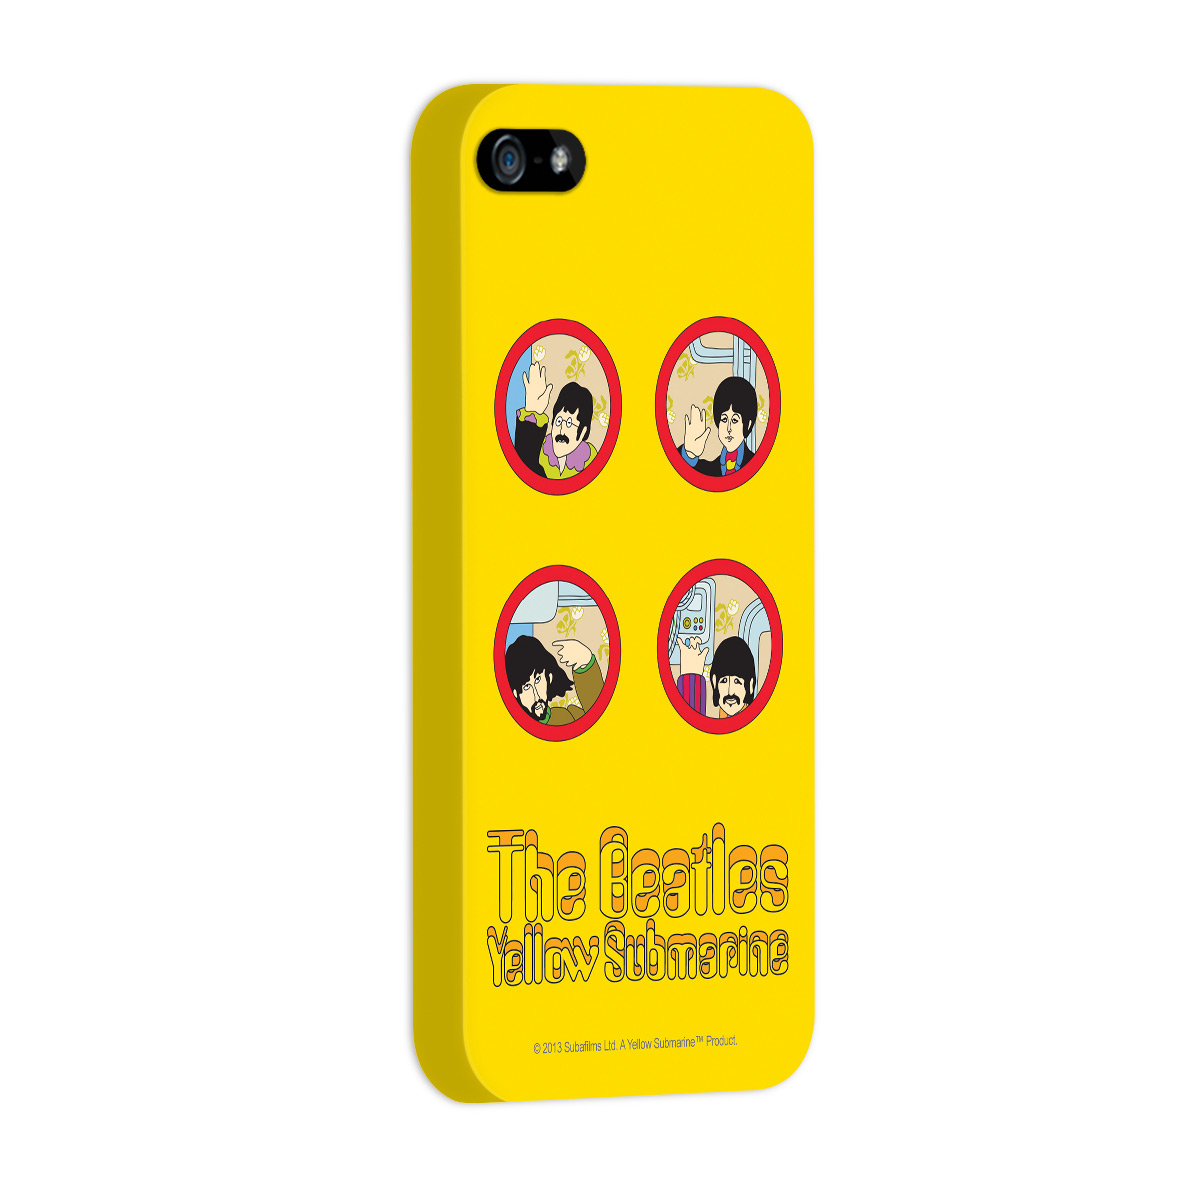 Capa de iPhone 5/5S The Beatles Yellow Submarine 1